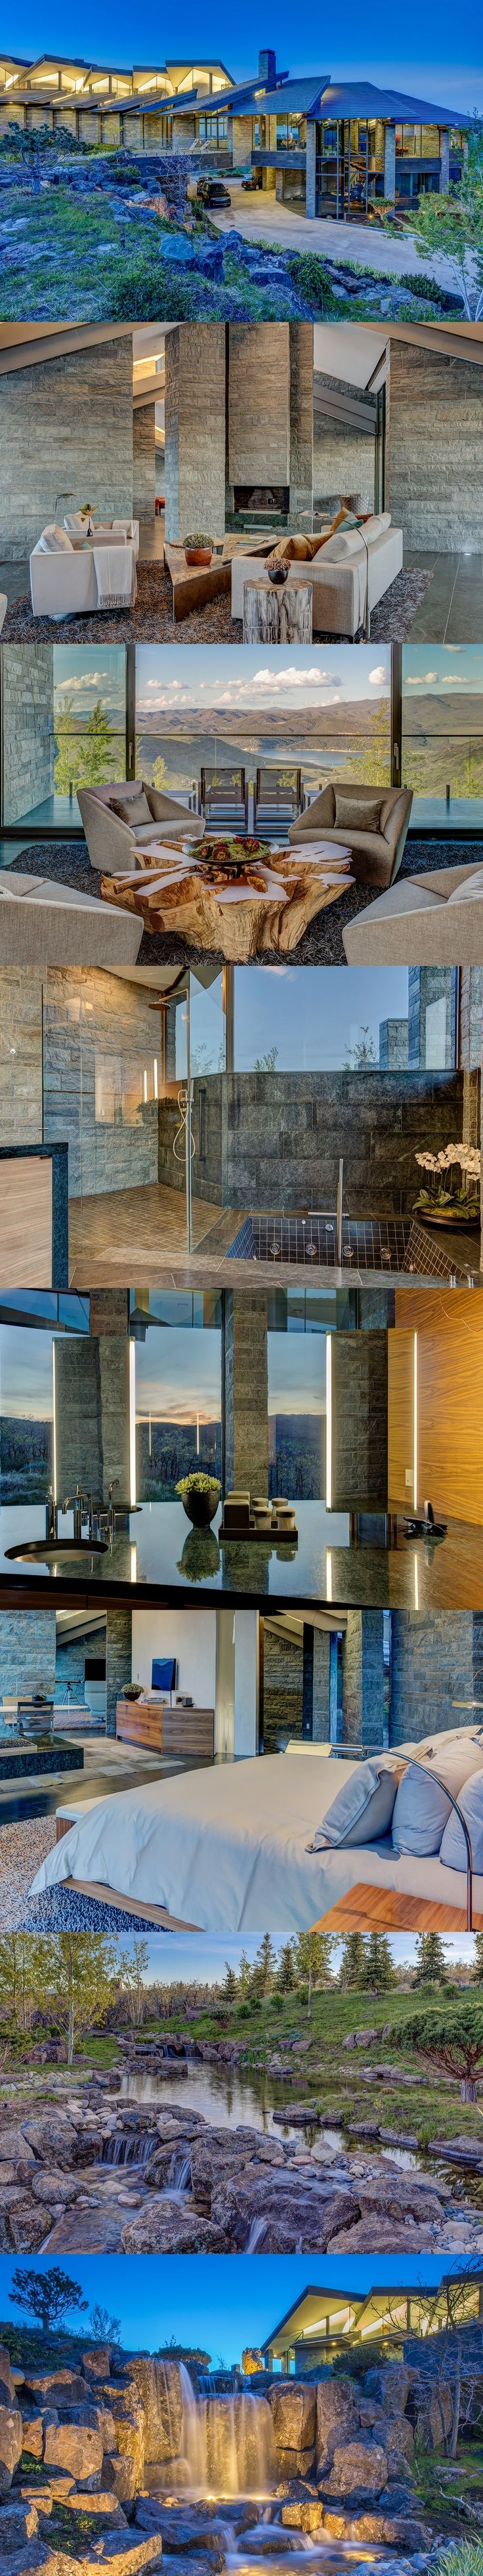 CASCADE – Architecture by Wallace Cunningham